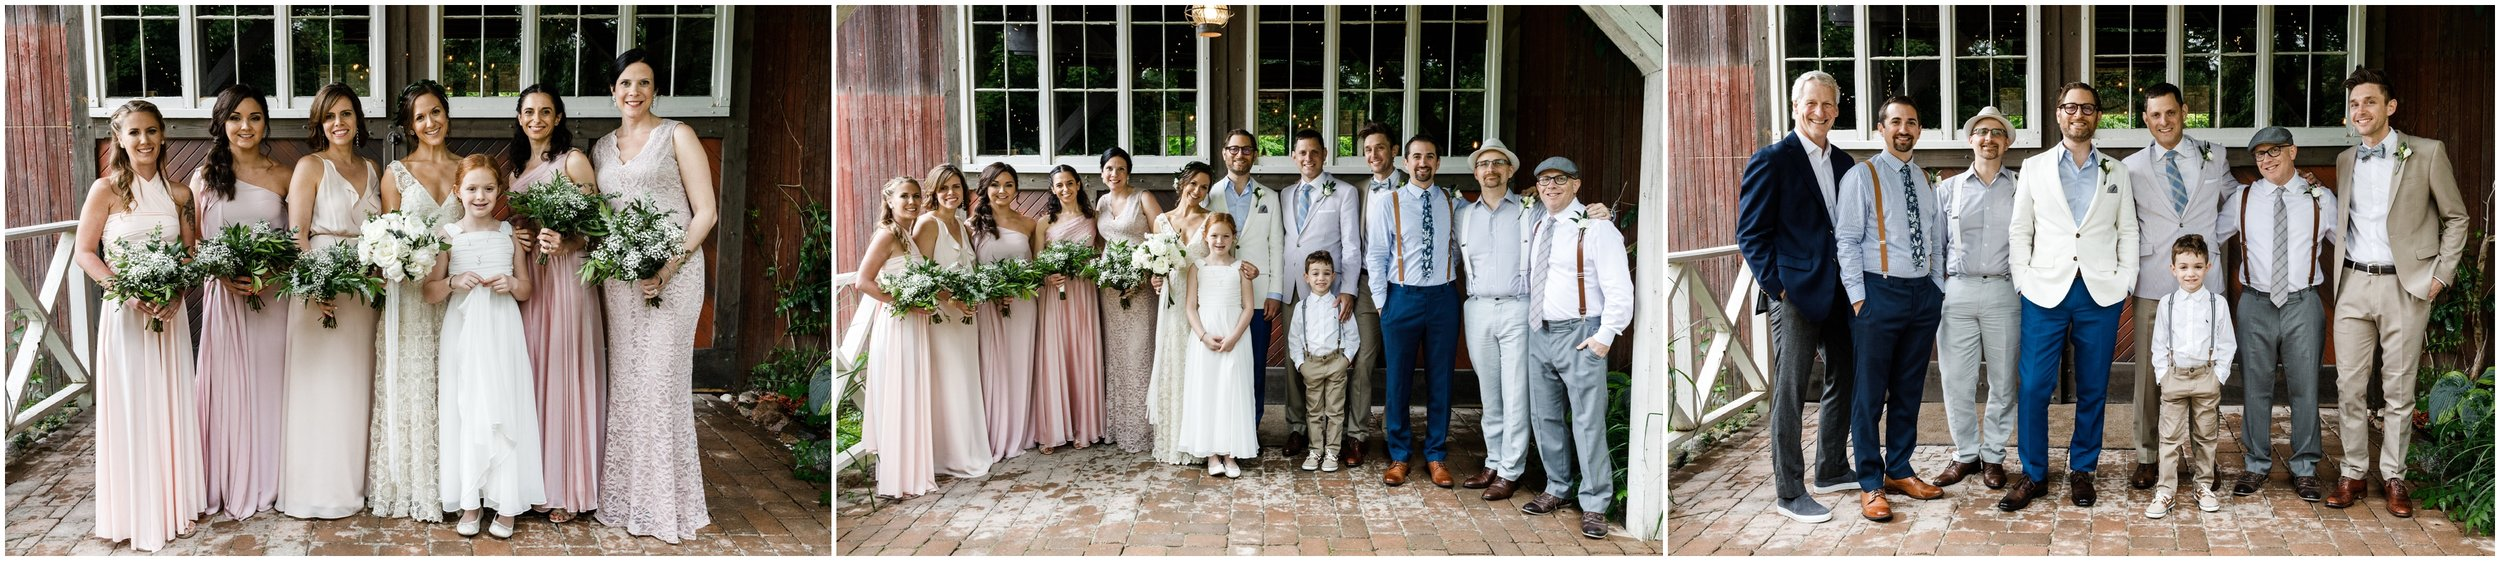 bridal party posing in front of barn